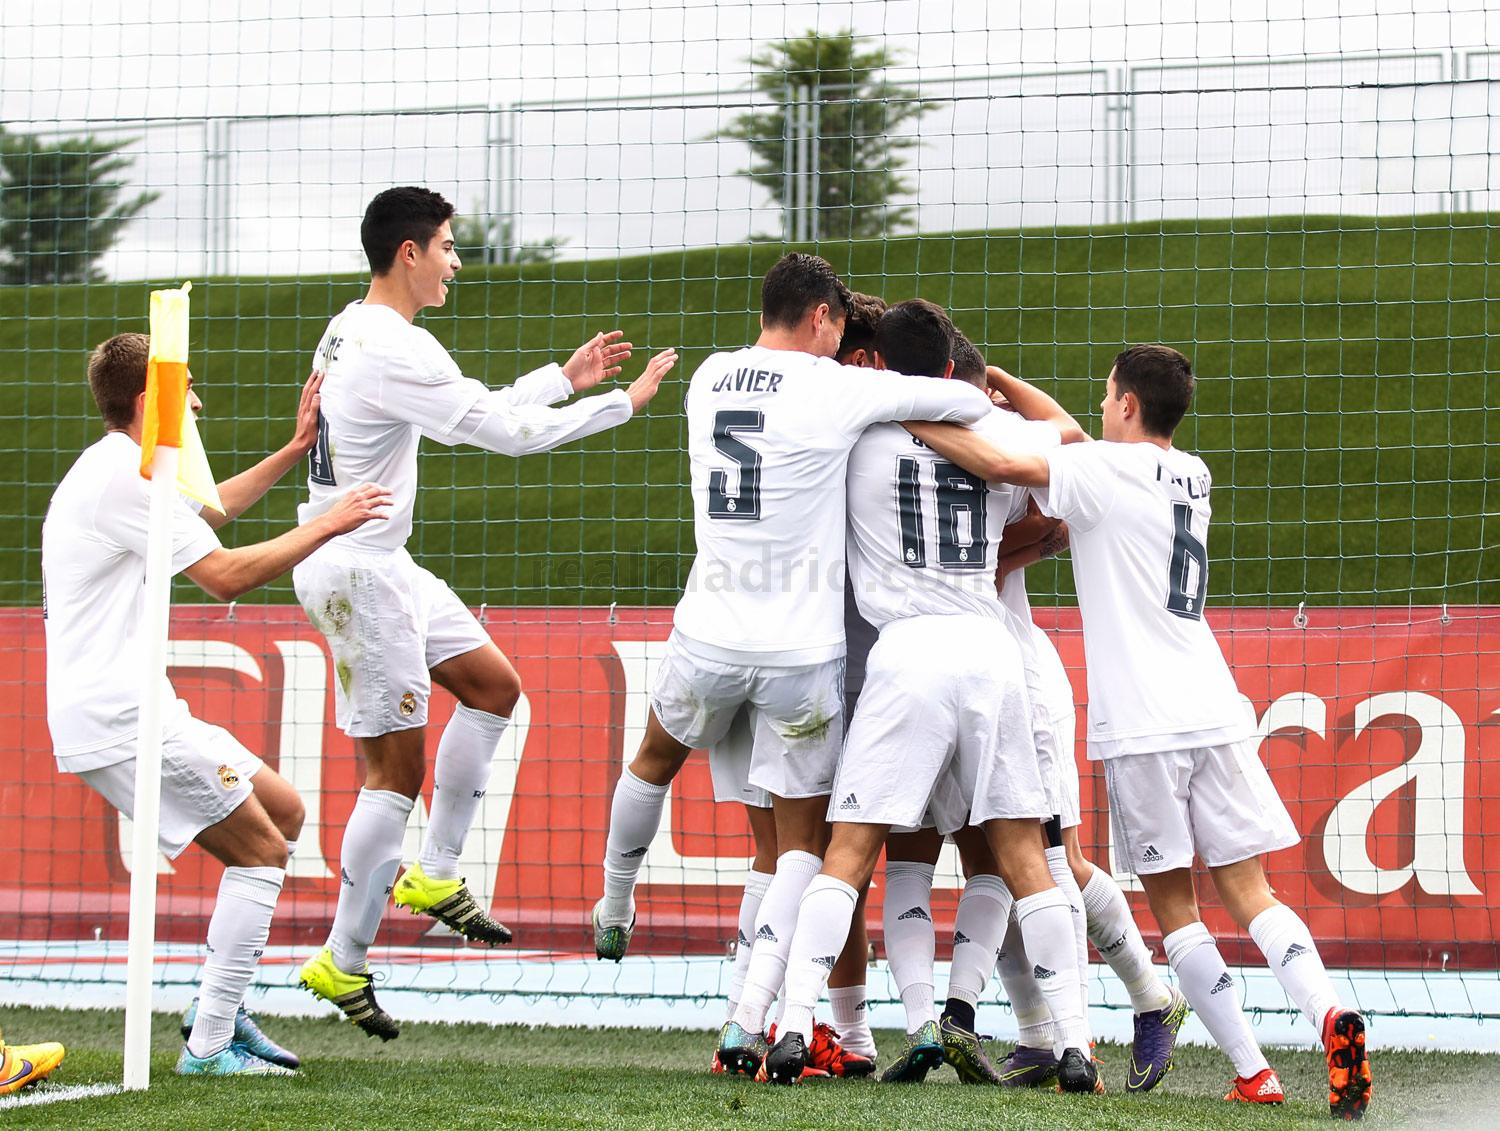 Real Madrid - Juvenil A - PSG - 03-11-2015